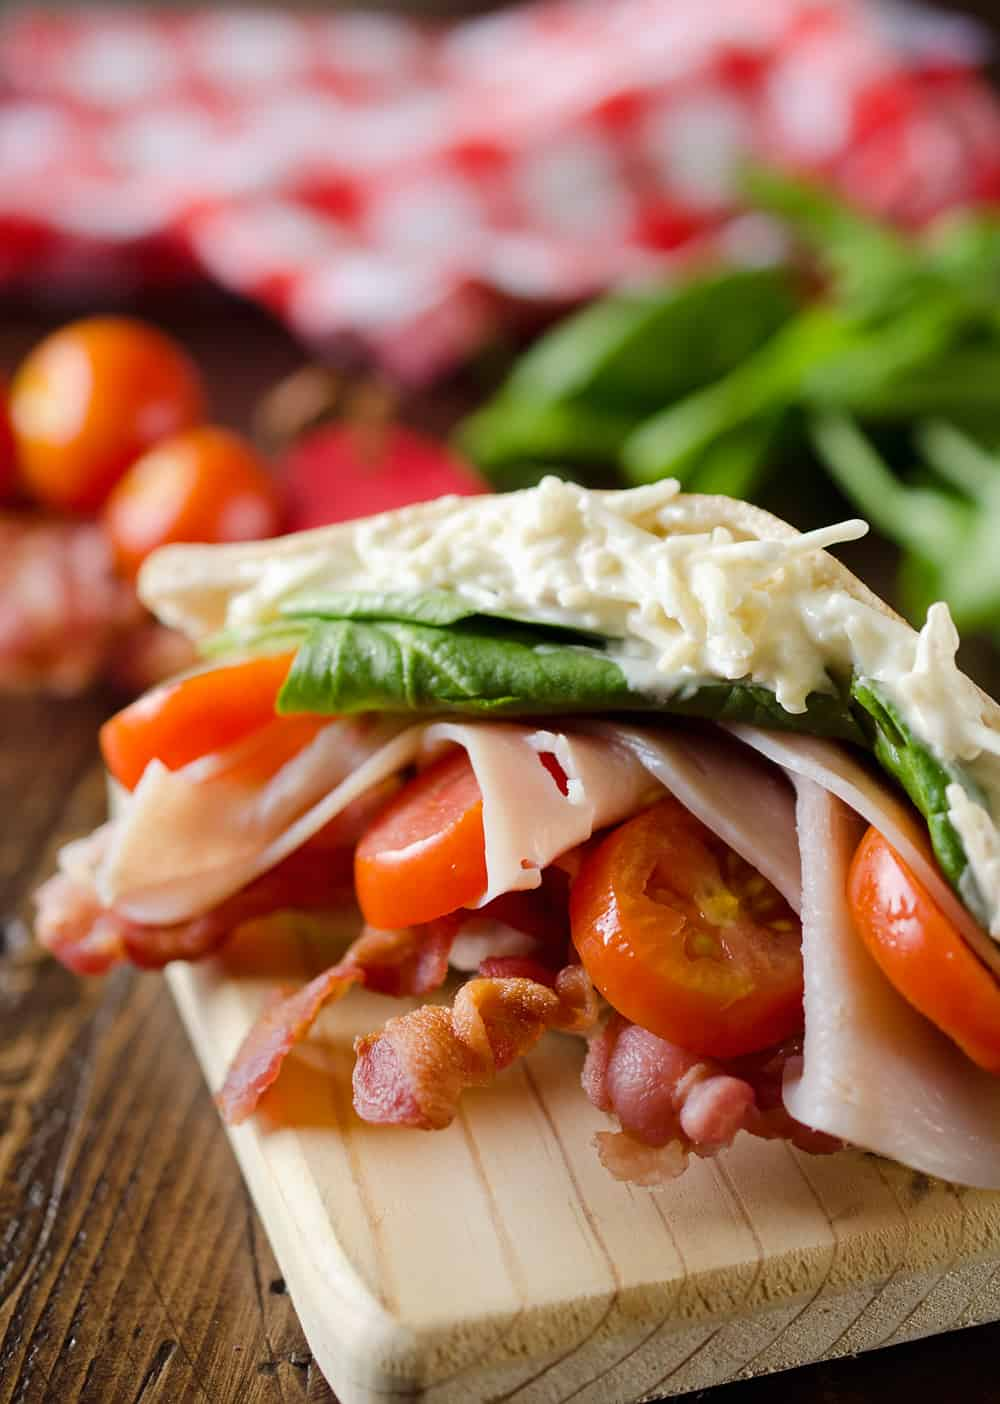 Parmesan Ranch Turkey BLT Pita is an easy and flavorful lunch loaded with bacon, lettuce, tomato, turkey and a delicious parmesan ranch. This sandwich recipe is perfect for a quick summer lunch everyone will love!